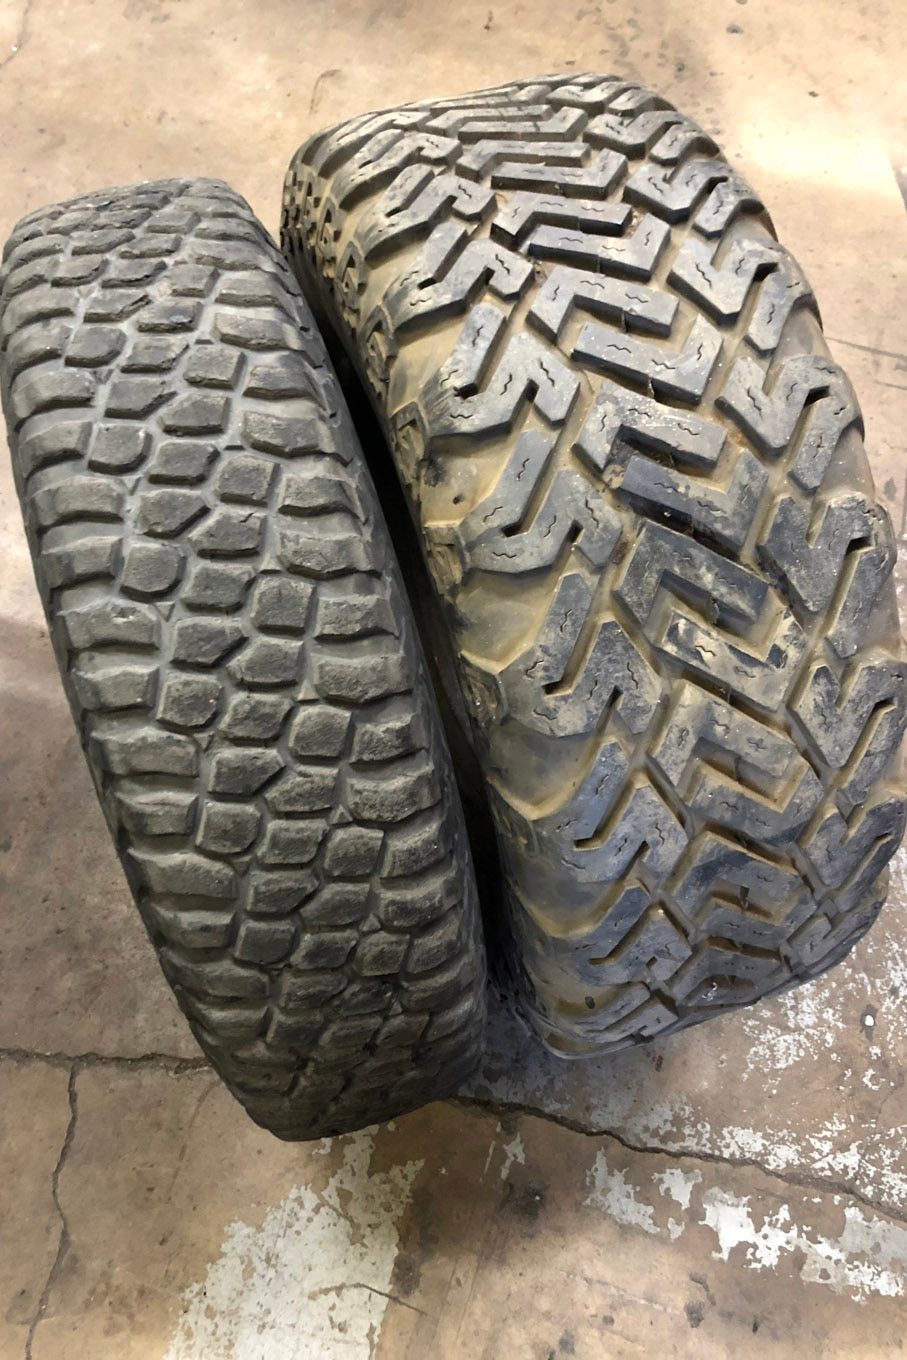 These are perhaps the most dramatic examples of skinny and wide tires. The 10.5-inch-wide Class 10 race tire on the left is typically mounted on a 4-inch-wide wheel! By contrast, the old Dick Cepek Fun Countries on the right are 15 inches wide. The Fun Countries have been the snow wheeling tire of choice for decades.